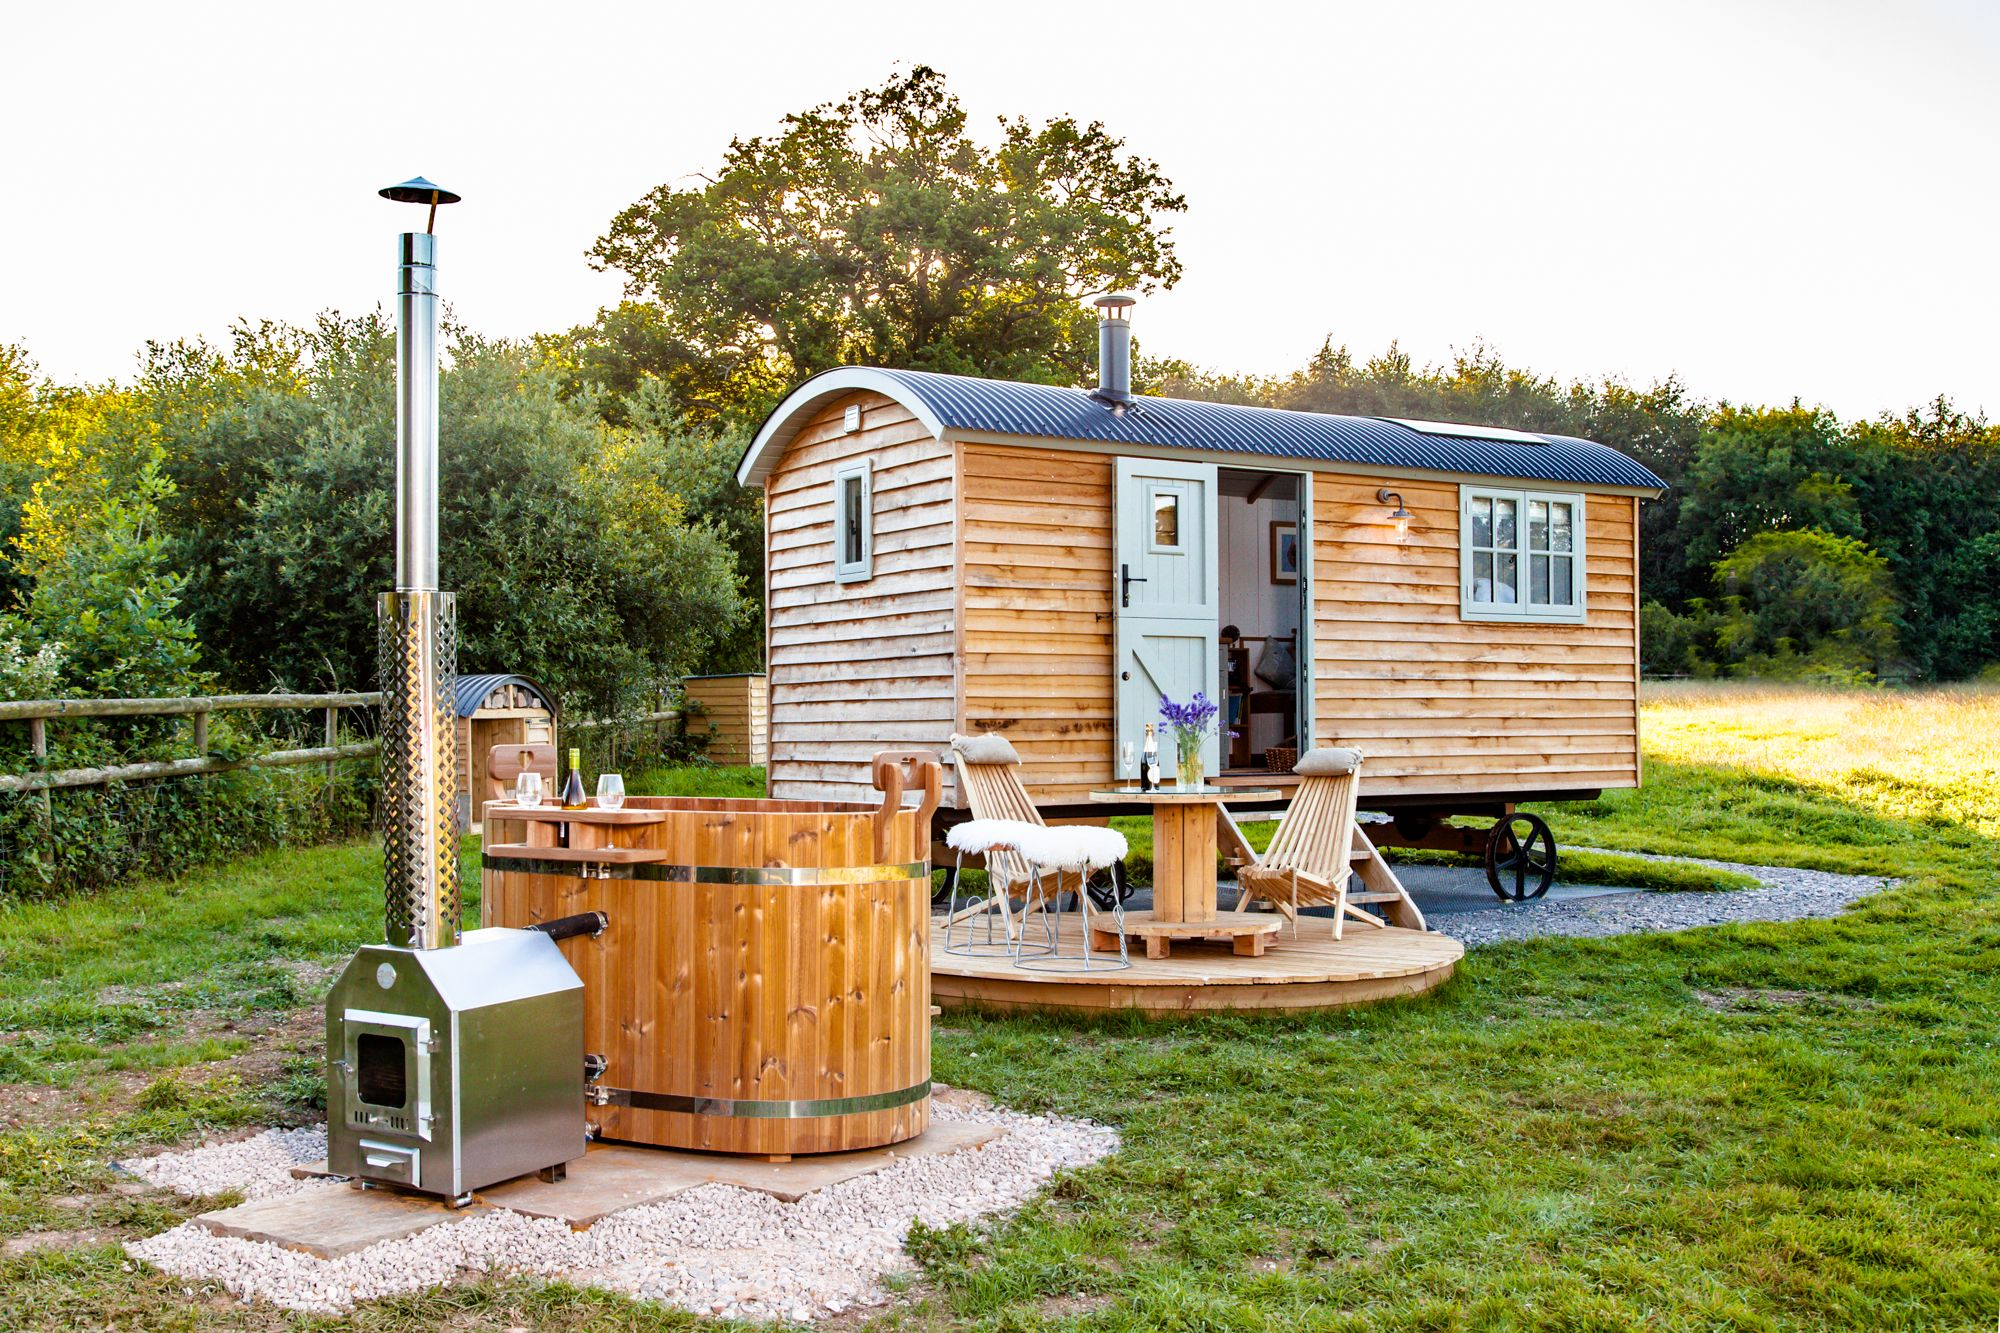 A stunning luxury shepherds hut with wood-fired hot tub near the New Forest National Park.